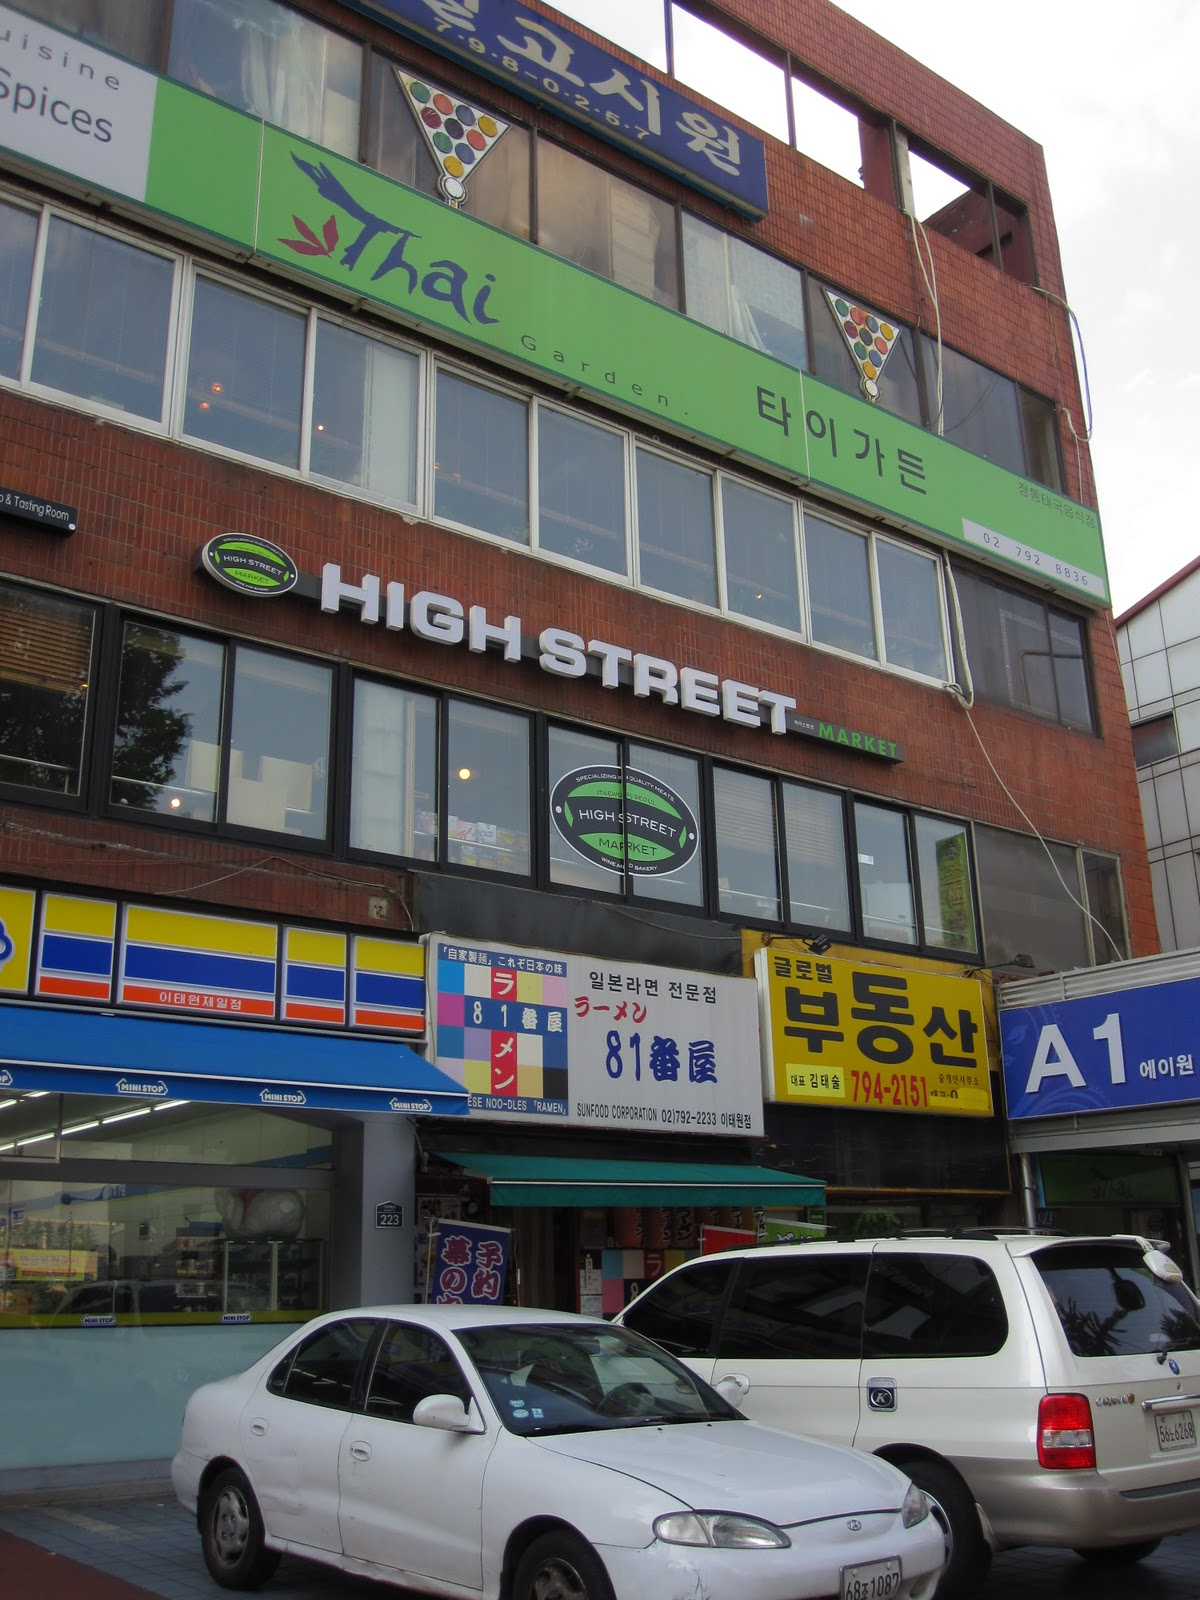 High Street Market - photo from jseseoulsearching.blogspot.kr